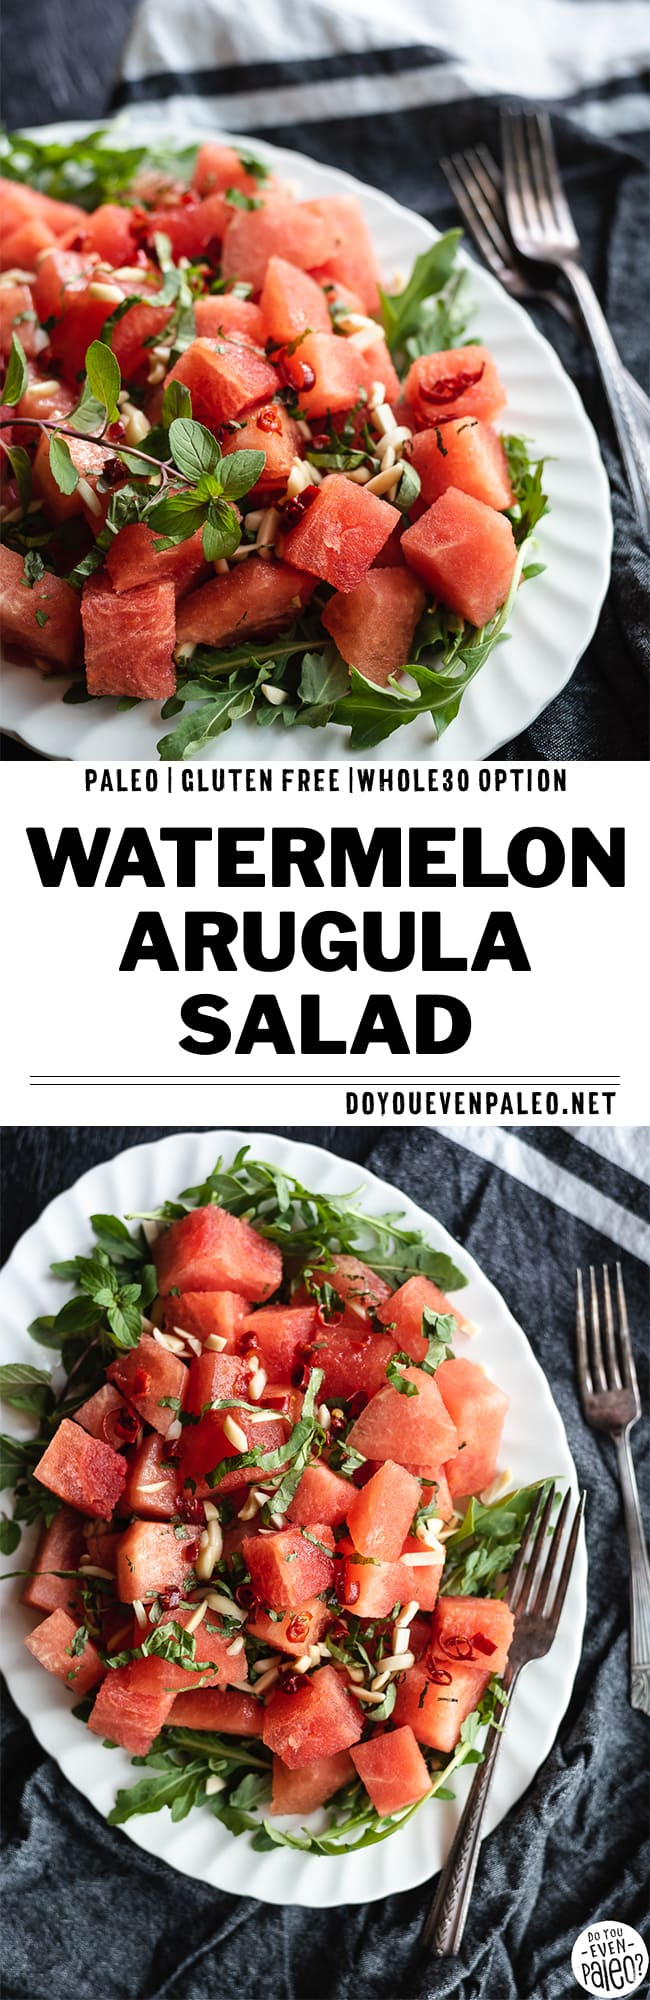 "Two images of watermelon arugula salad with the text ""paleo 